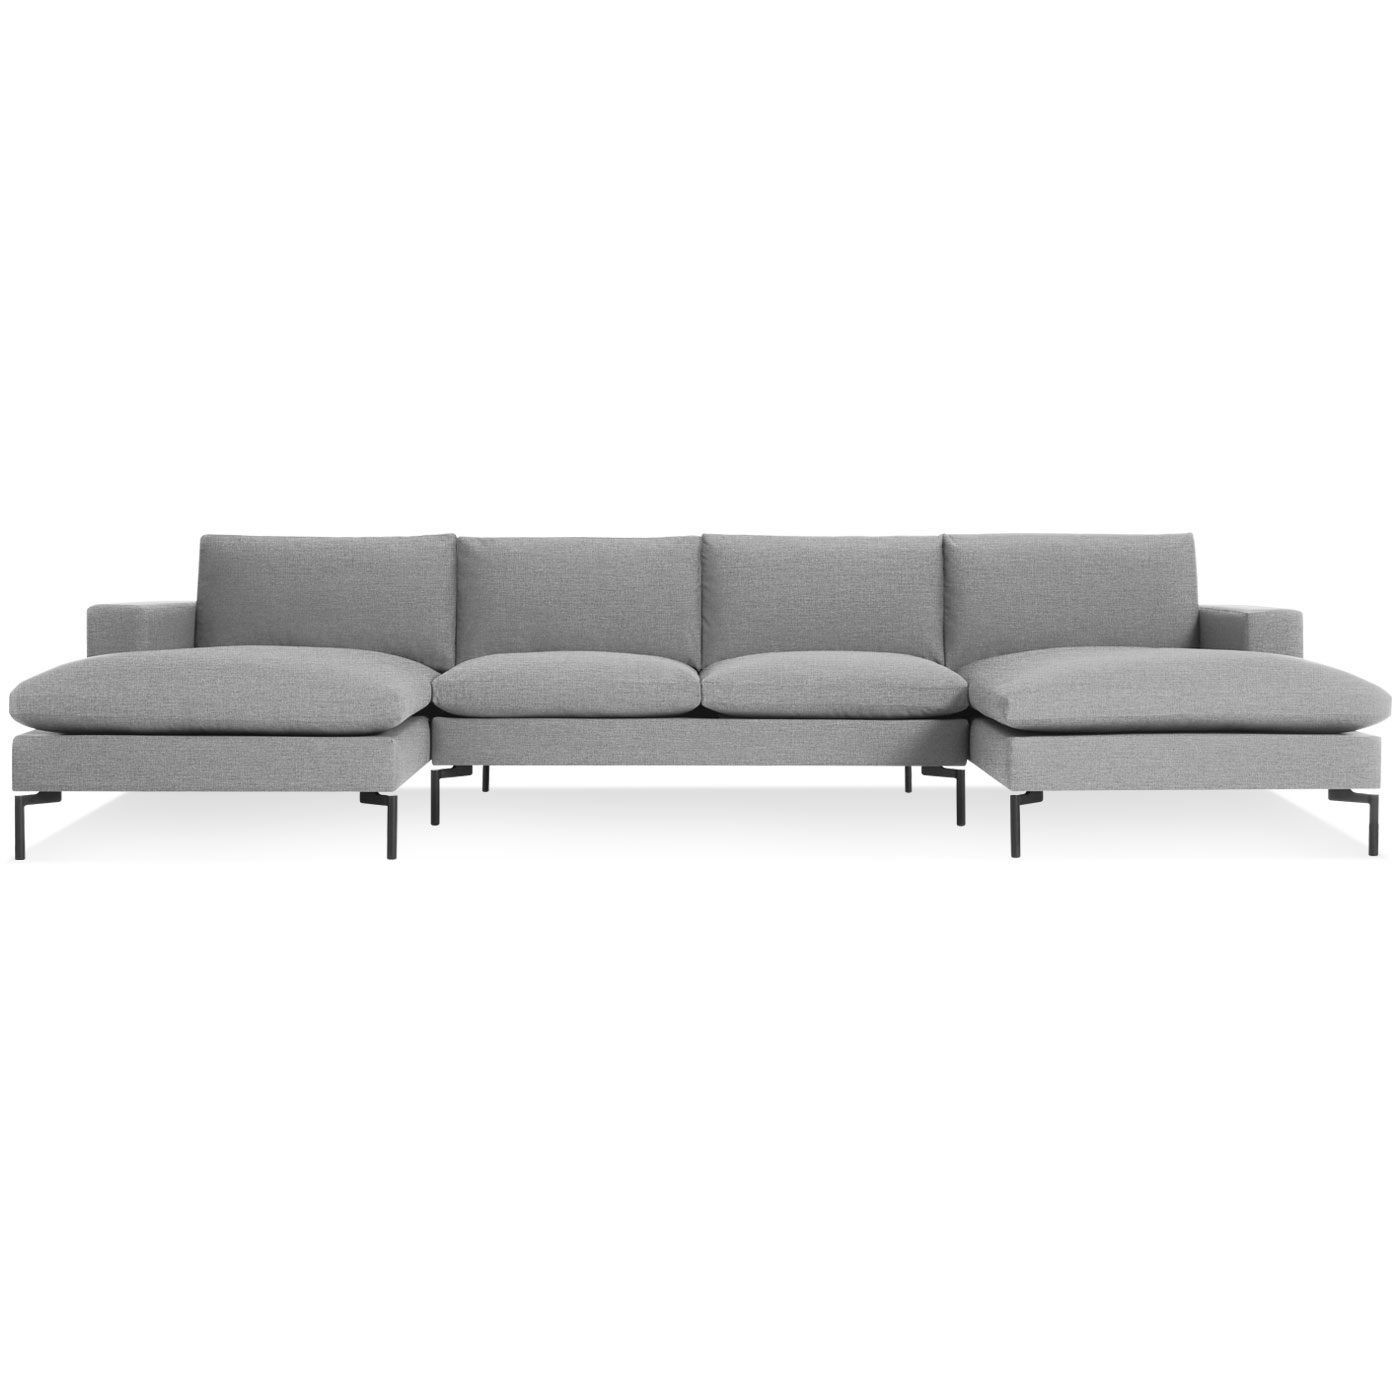 New Standard Modern U Shaped Sectional Sofa | Blu Dot With Blue U Shaped Sectionals (Photo 13 of 15)